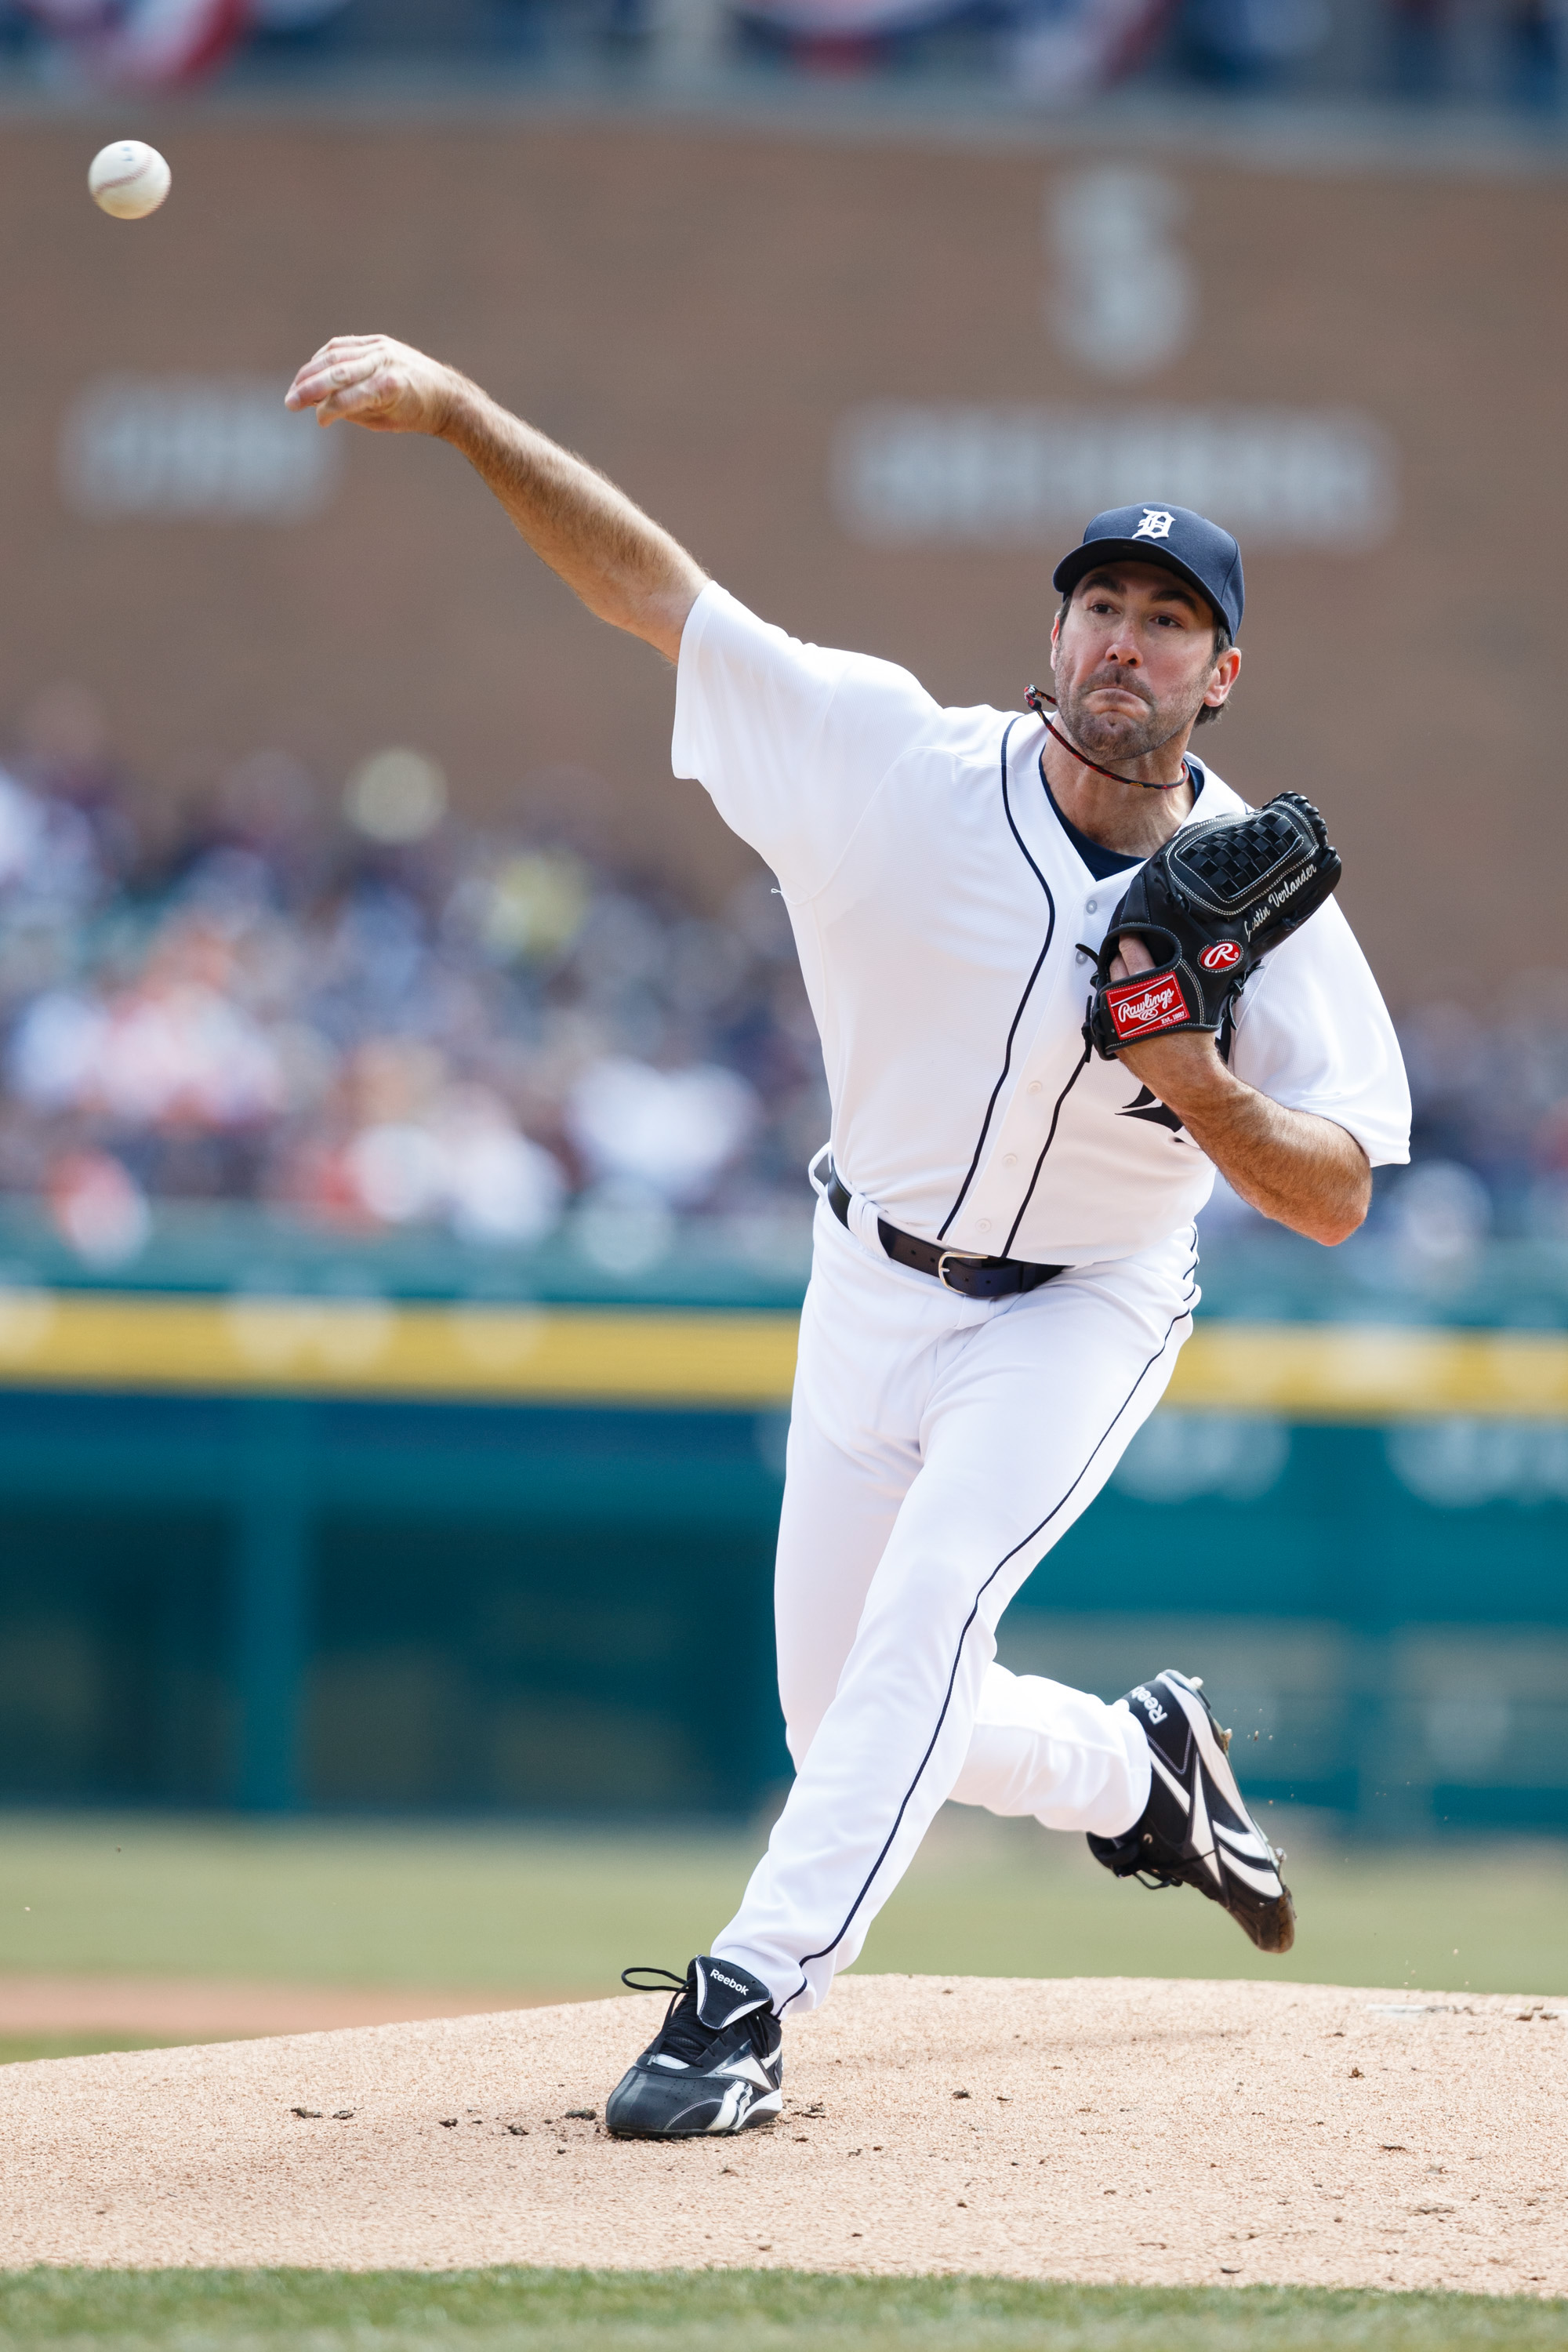 Justin Verlander has 29 strikeouts in four starts this season. (USA Today Sports)